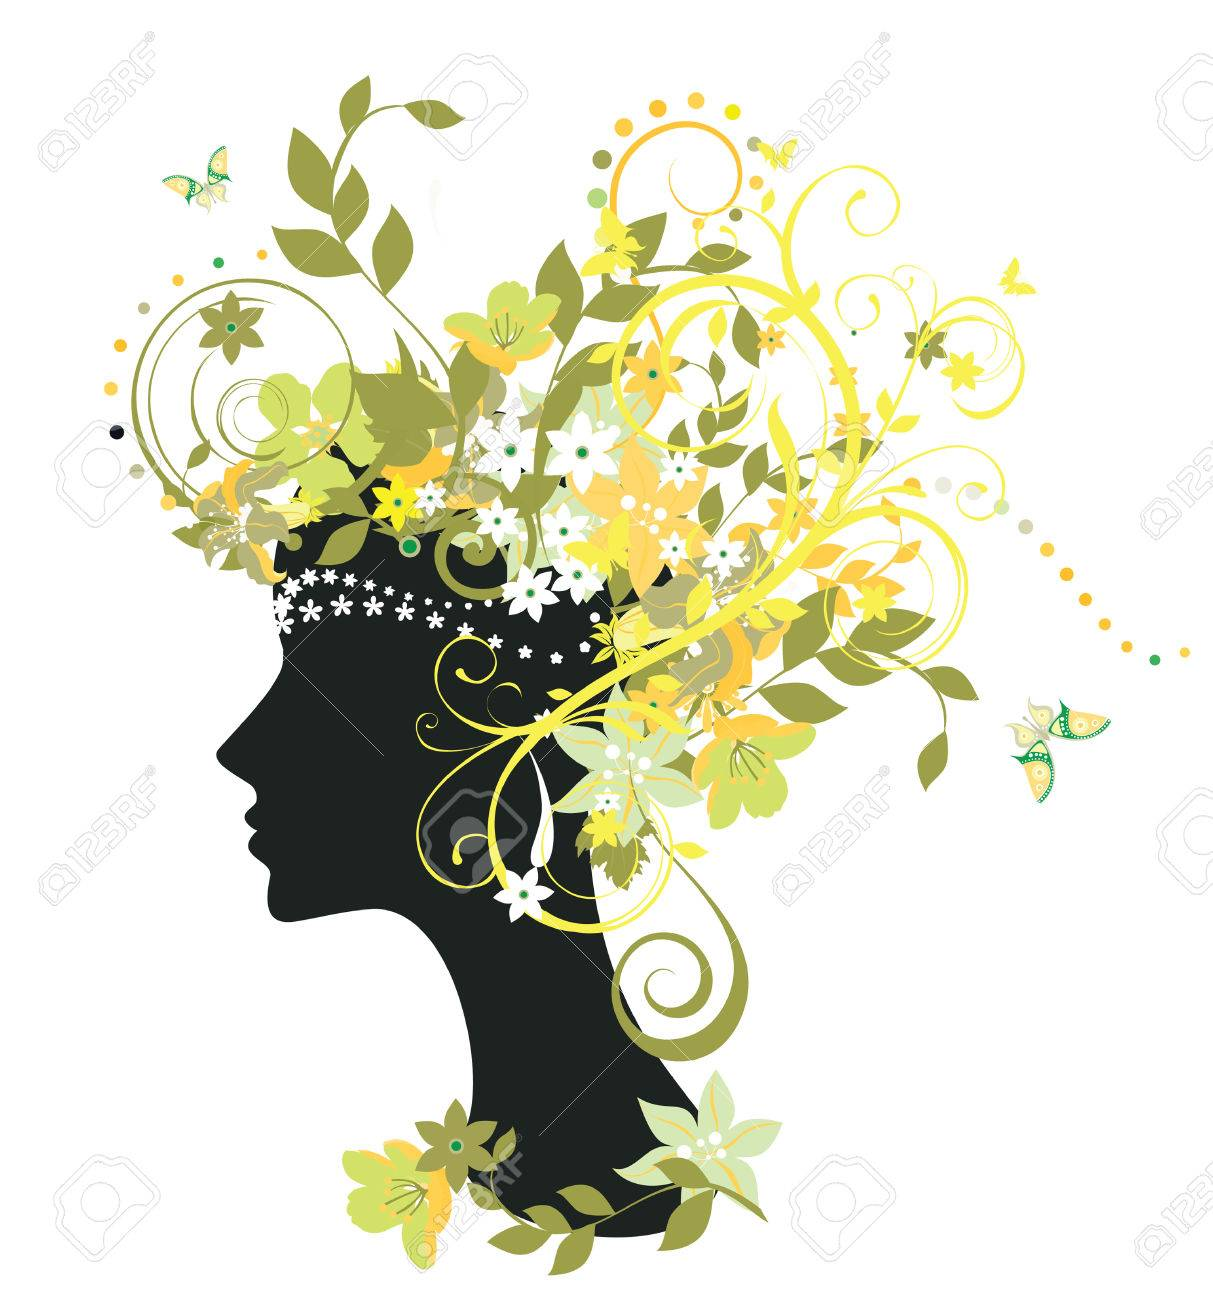 Decorative silhouette of woman with flowers Stock Vector - 4855773